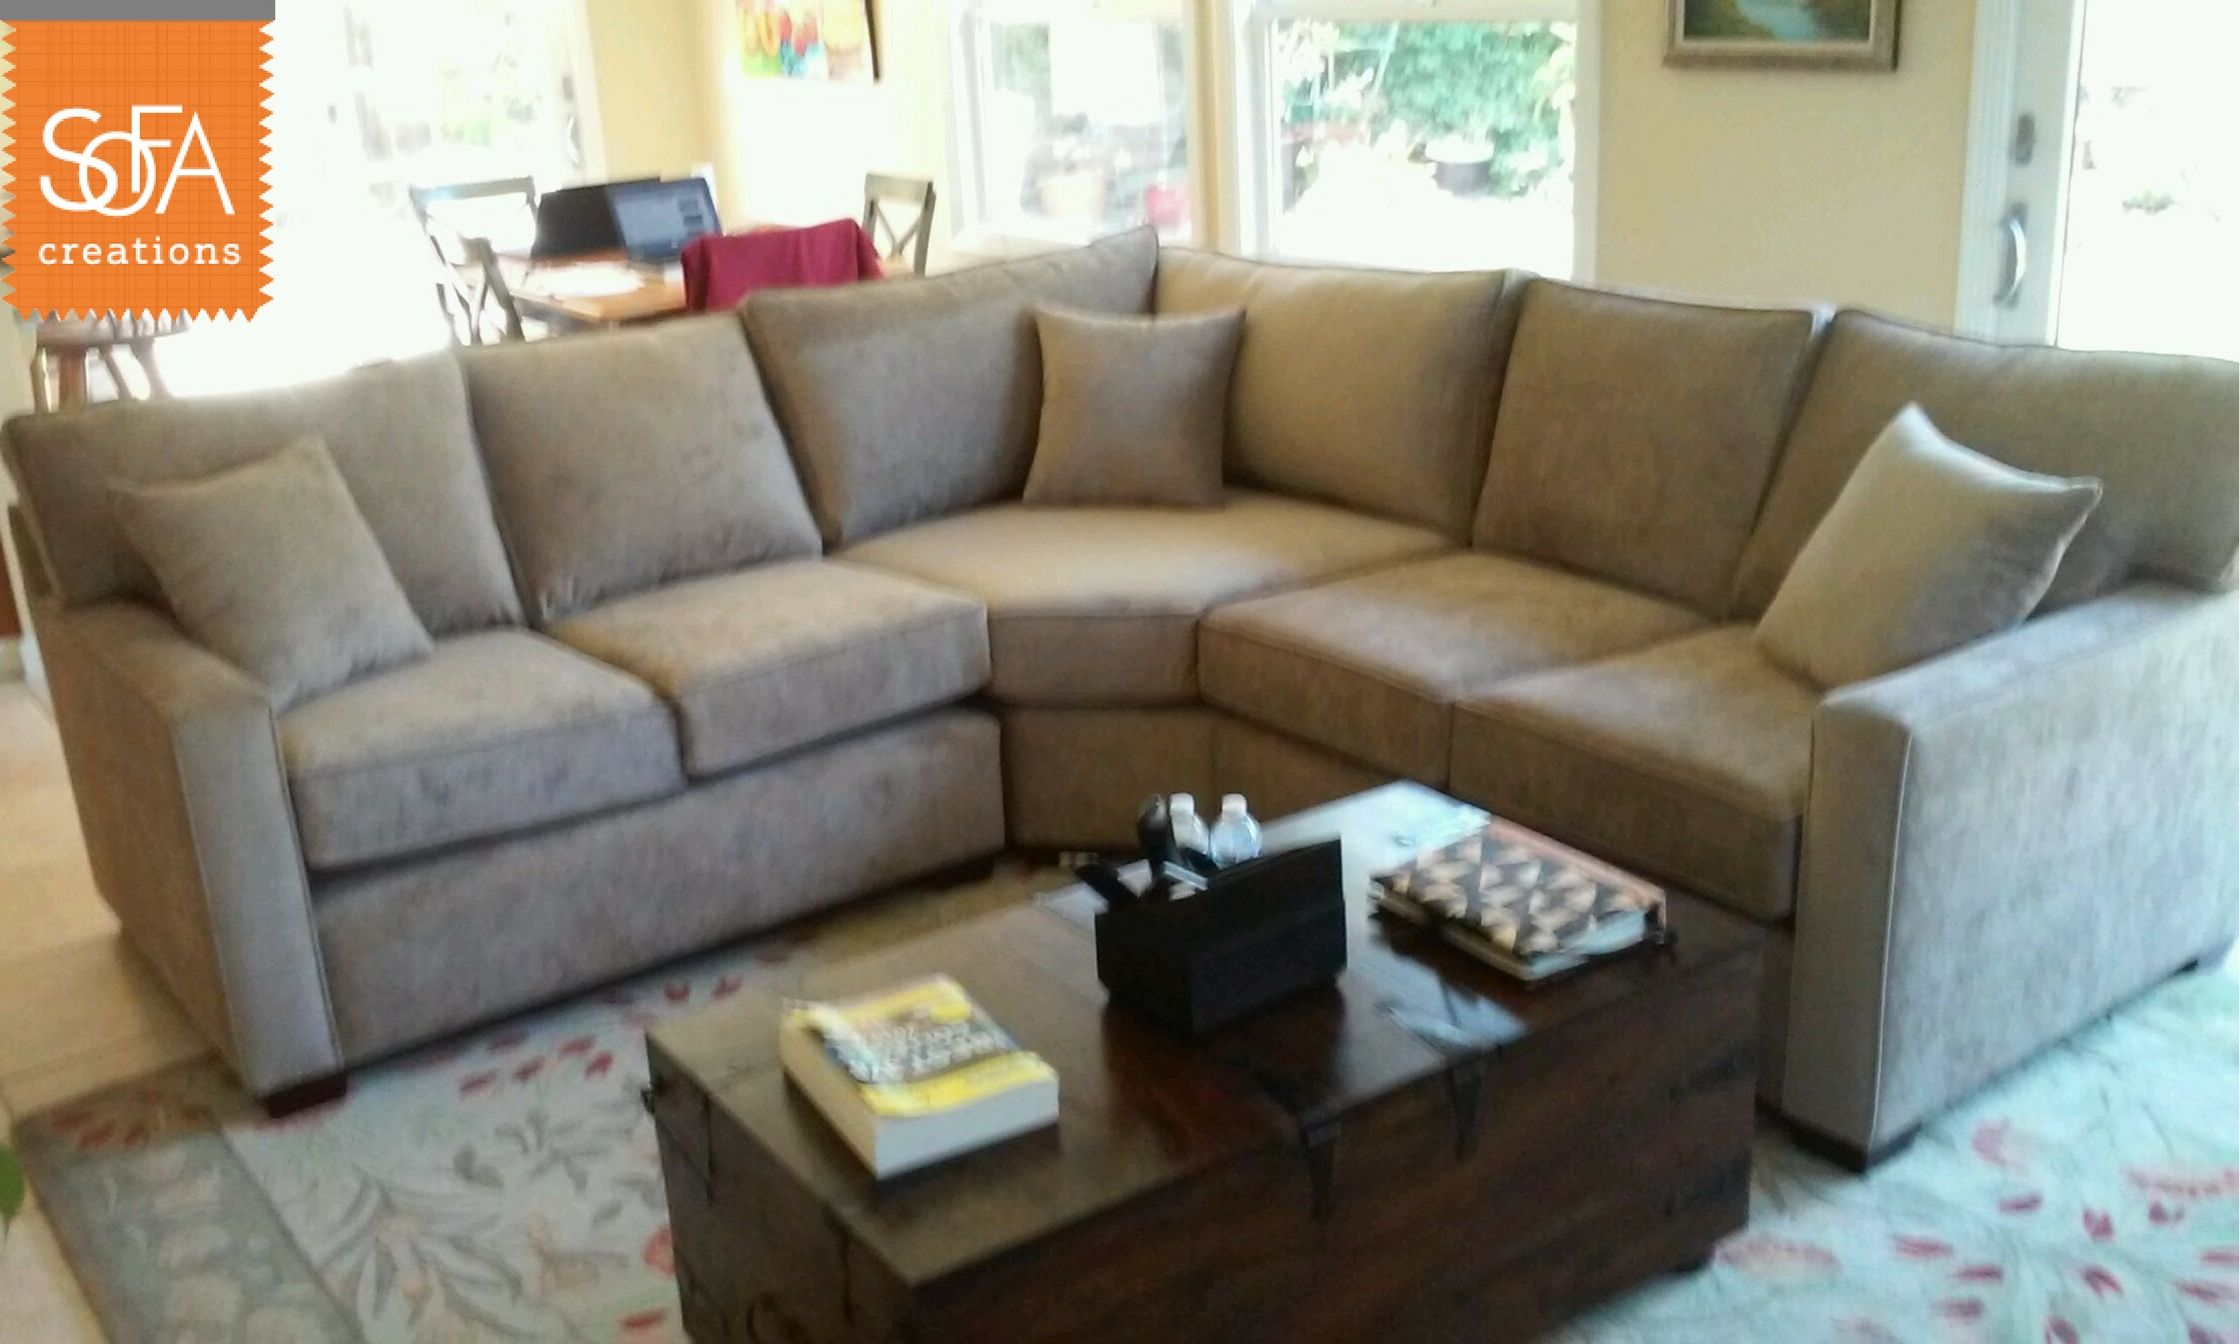 Davis Wedge Sectional In Microfiber. At Sofa Creations, Our Sectionals Are  Customizable To The